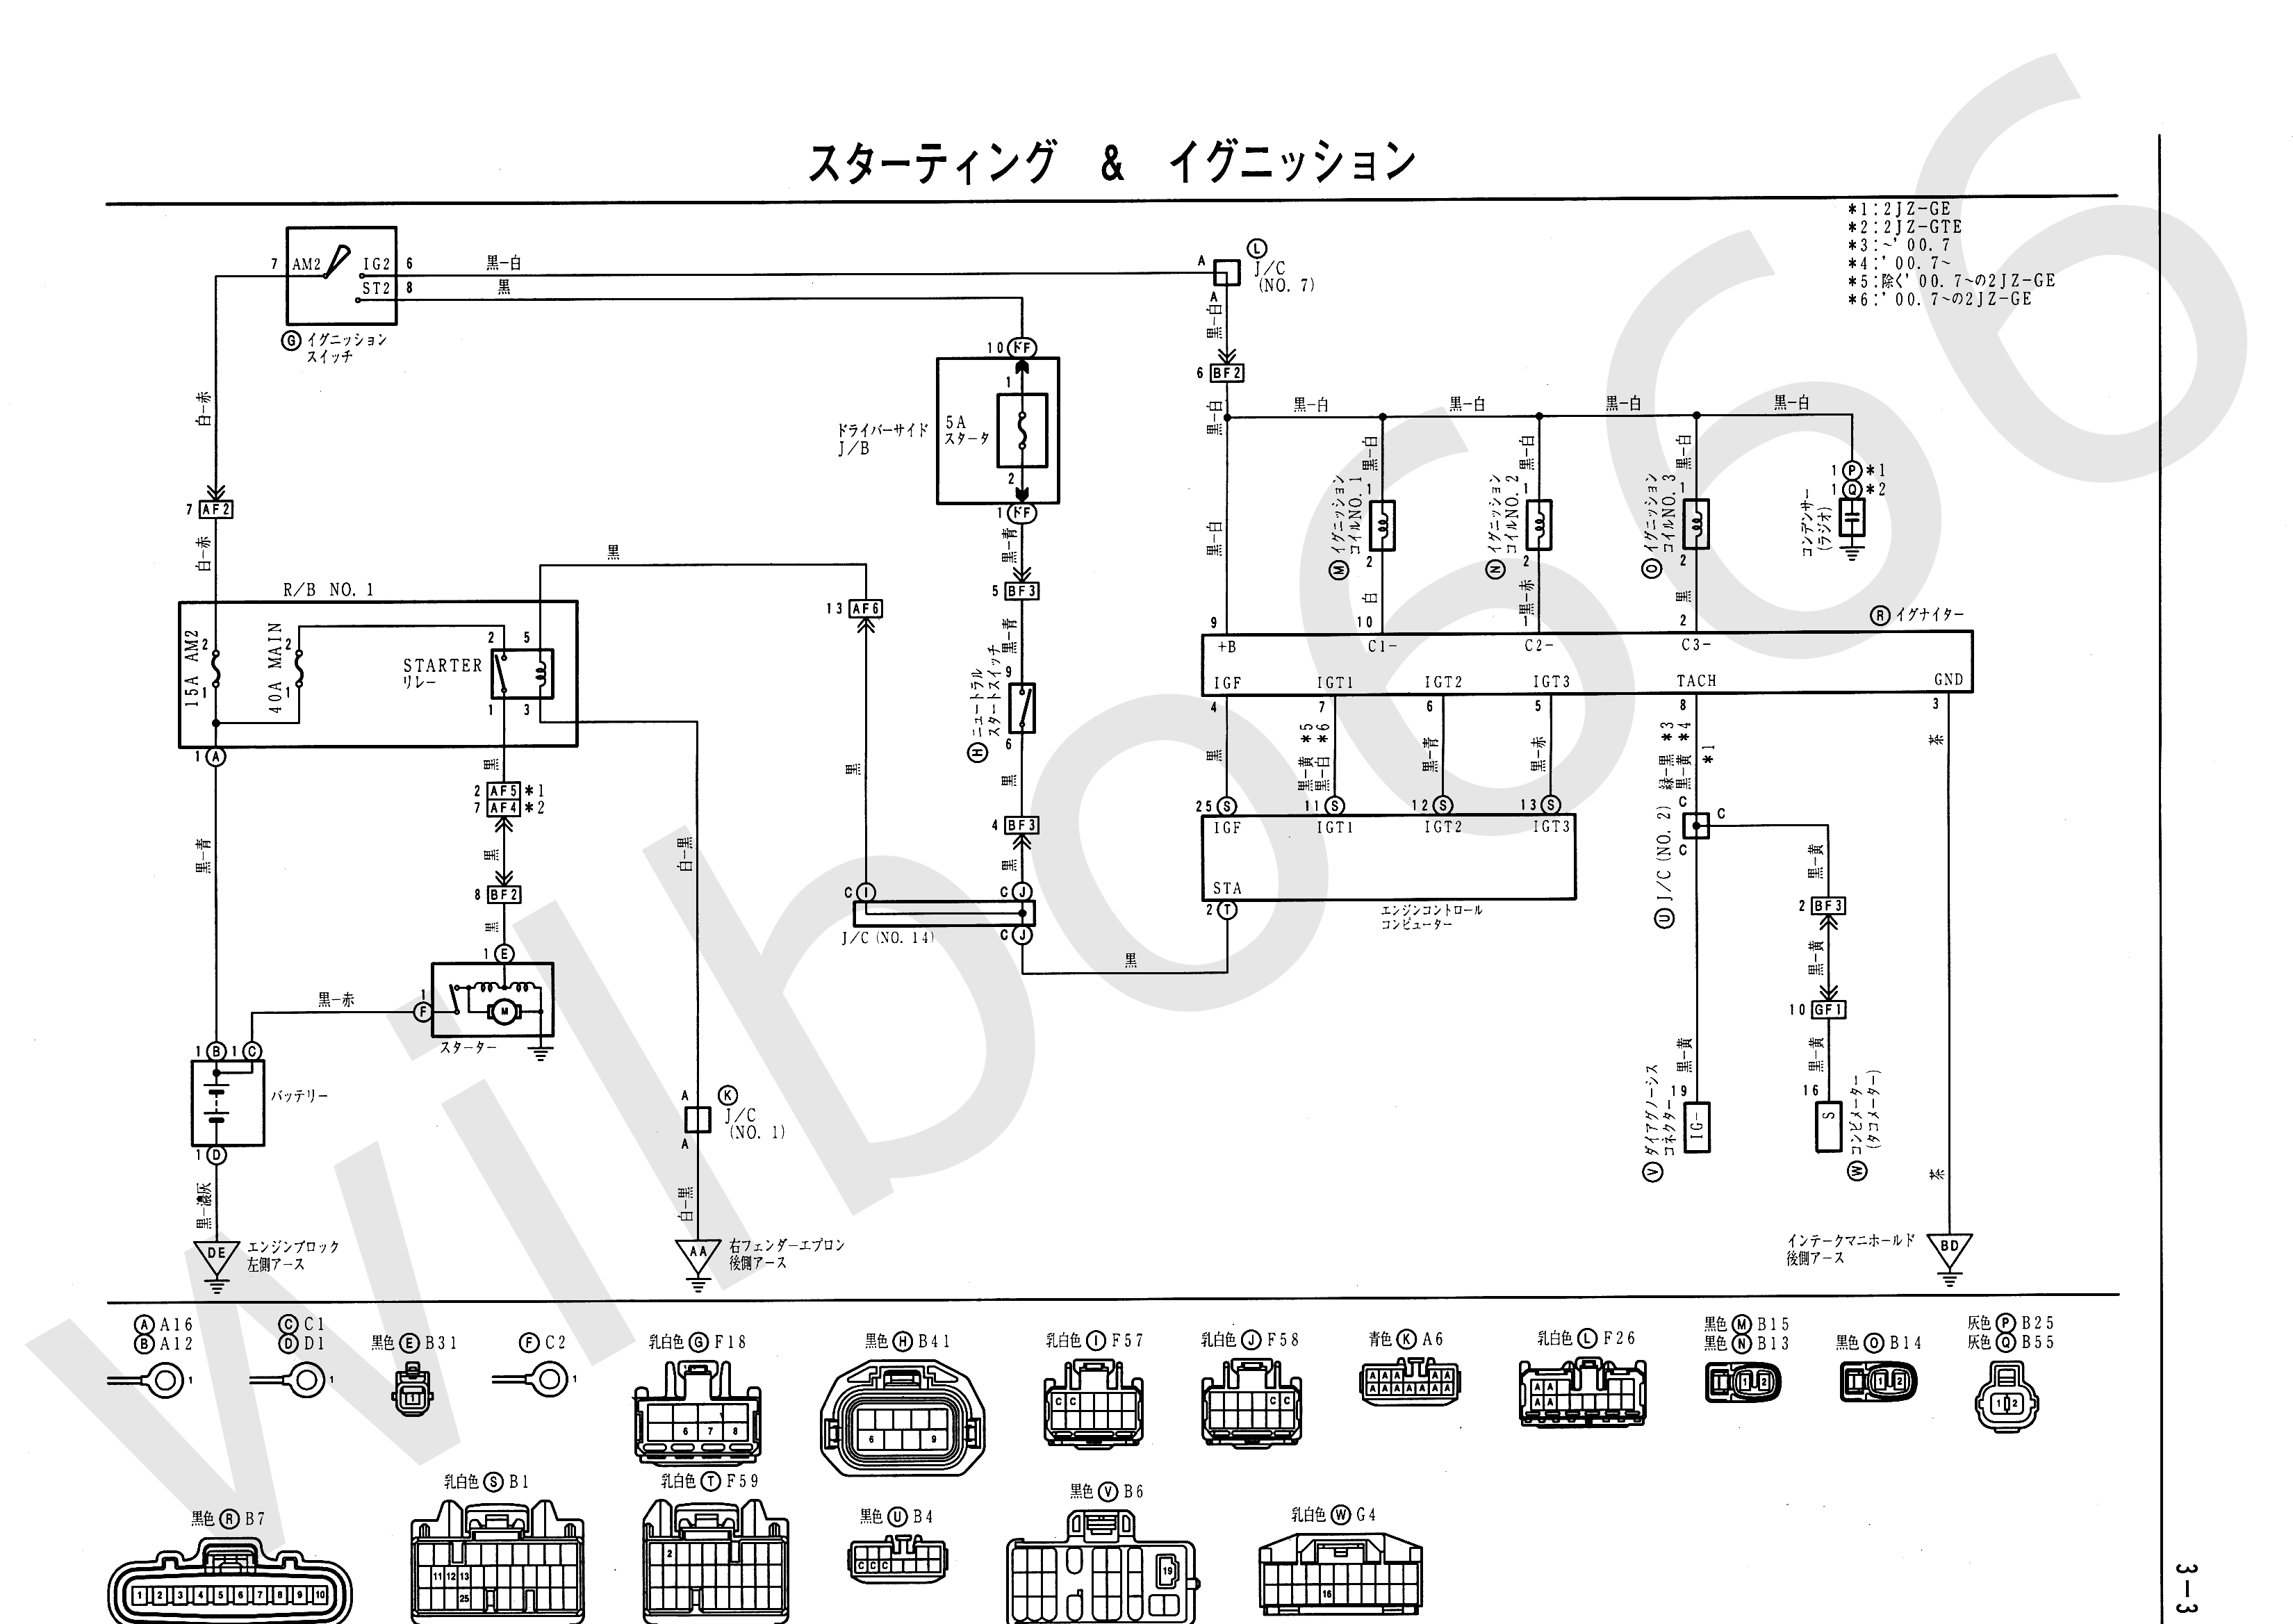 JZS161 Electrical Wiring Diagram 6748505 3 3 wilbo666 2jz gte vvti jzs161 aristo engine wiring 2jzgte vvti wiring harness at suagrazia.org